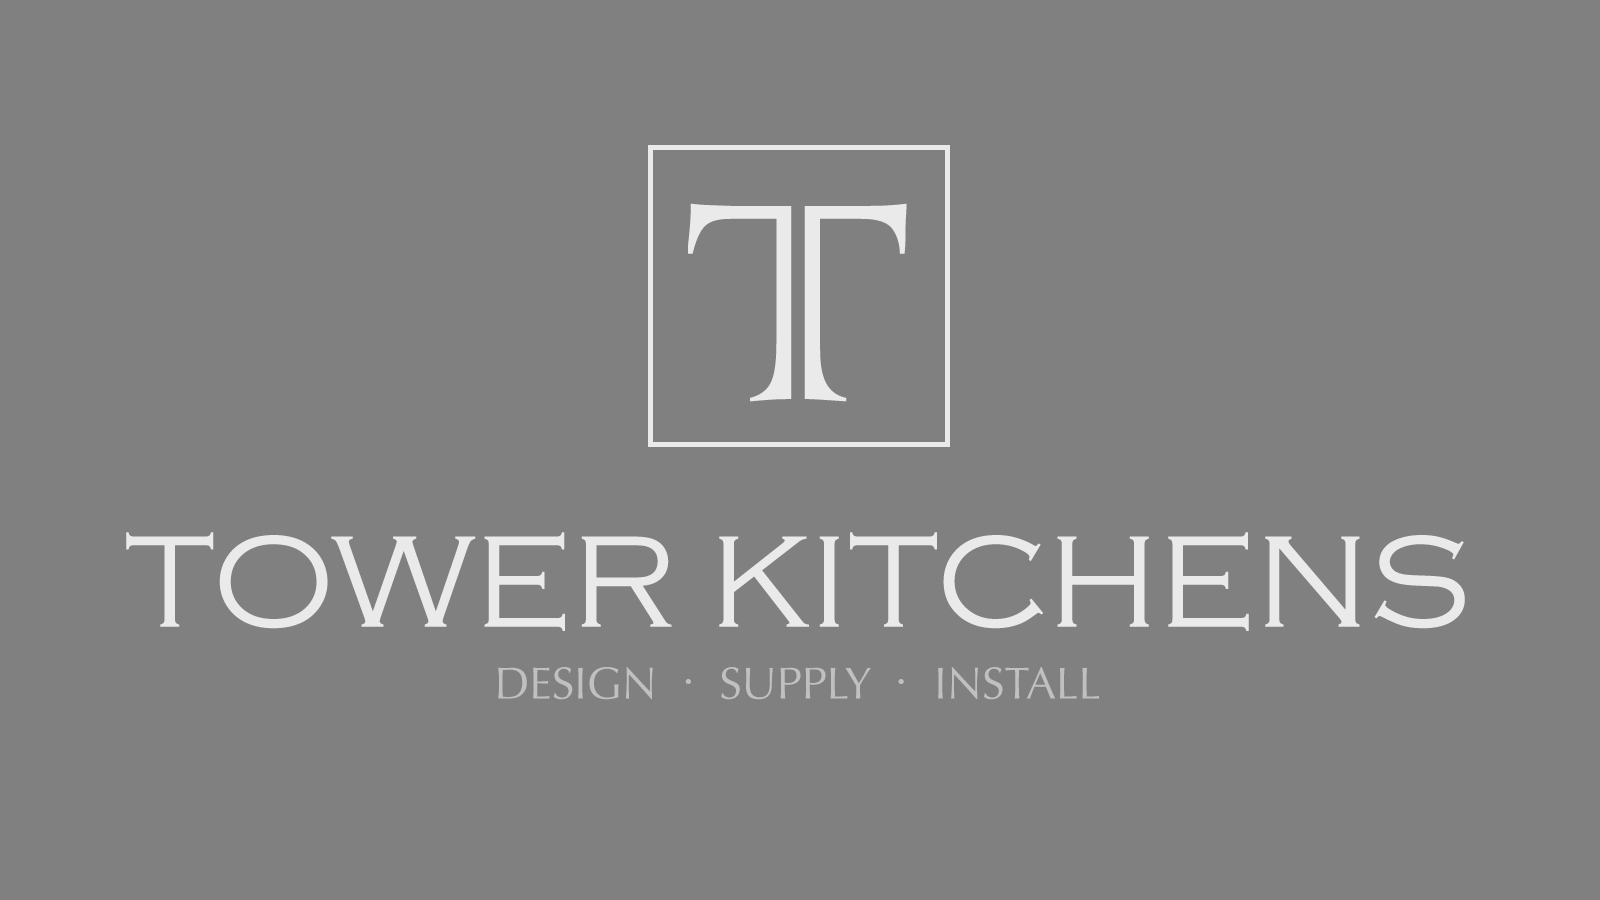 WE TOWER ABOVE OTHER KITCHENS COMPANIES